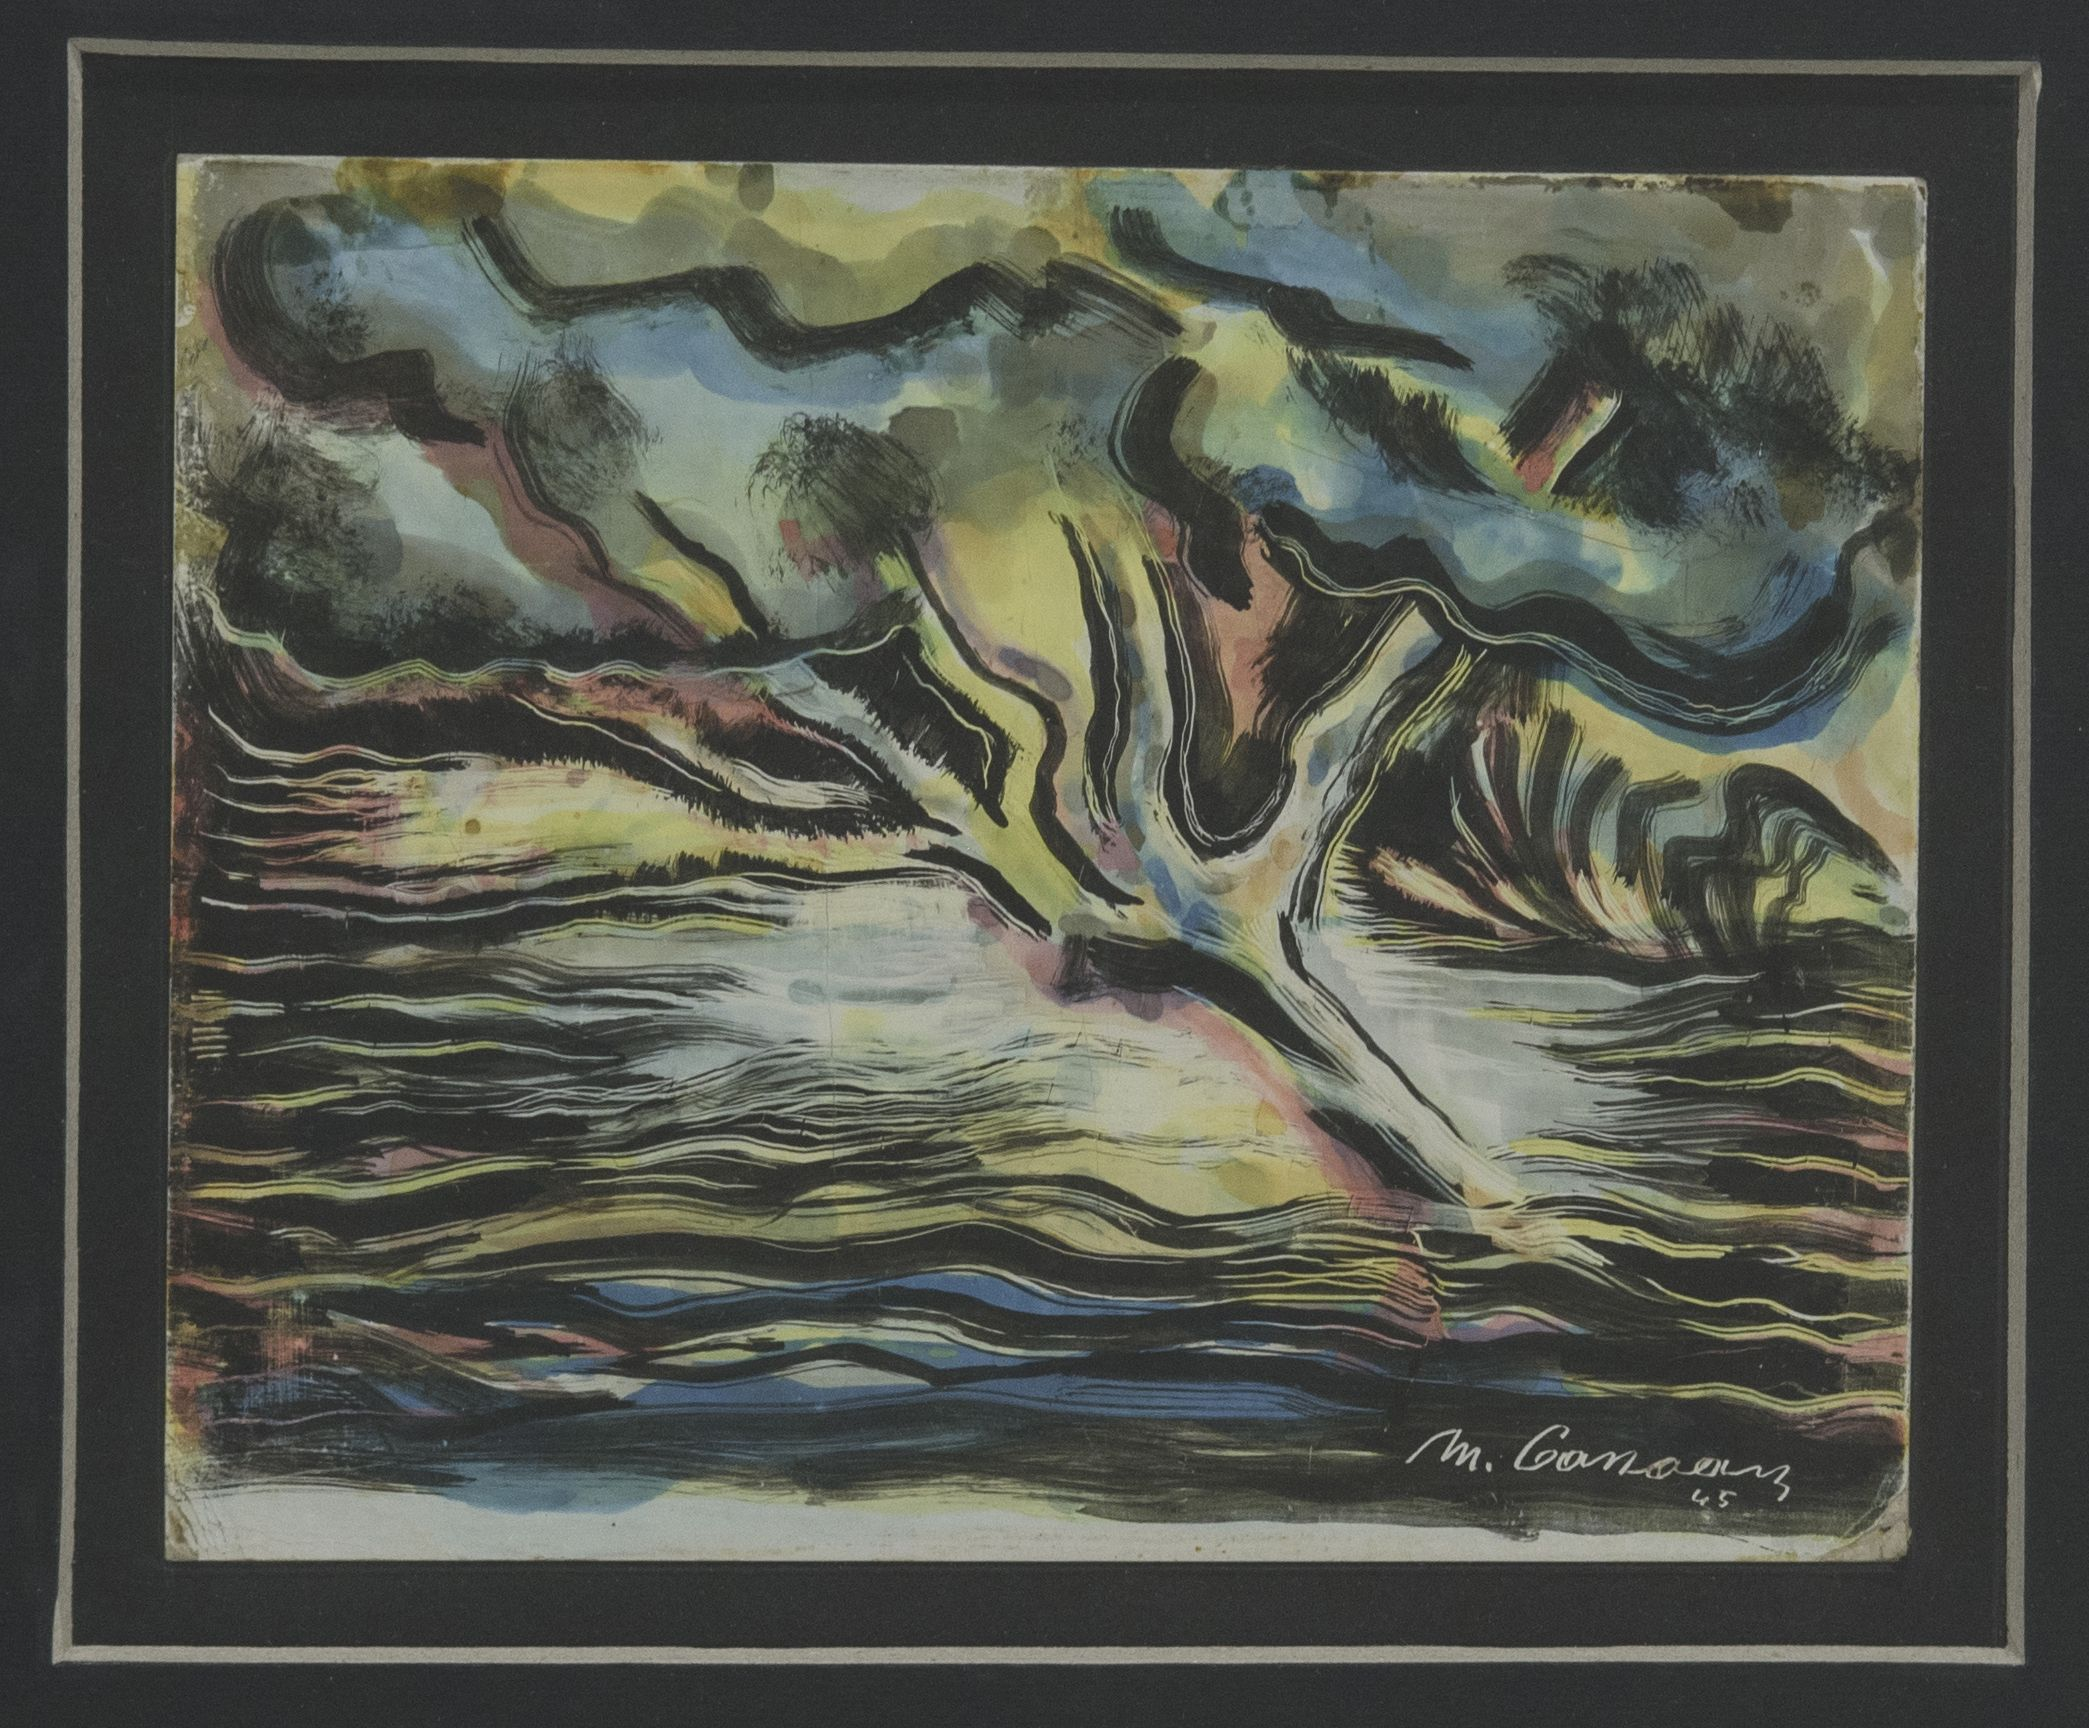 7.Mounir Canaan, The Holy Tree, 1945. Oil on cardboard, 17 x 20 cm. When Art Becomes Liberty: The Egyptian Surrealists, Palace of Arts, Cairo. Sharjah Art Foundation Collection. Image courtesy of Sharjah Art Foundation.